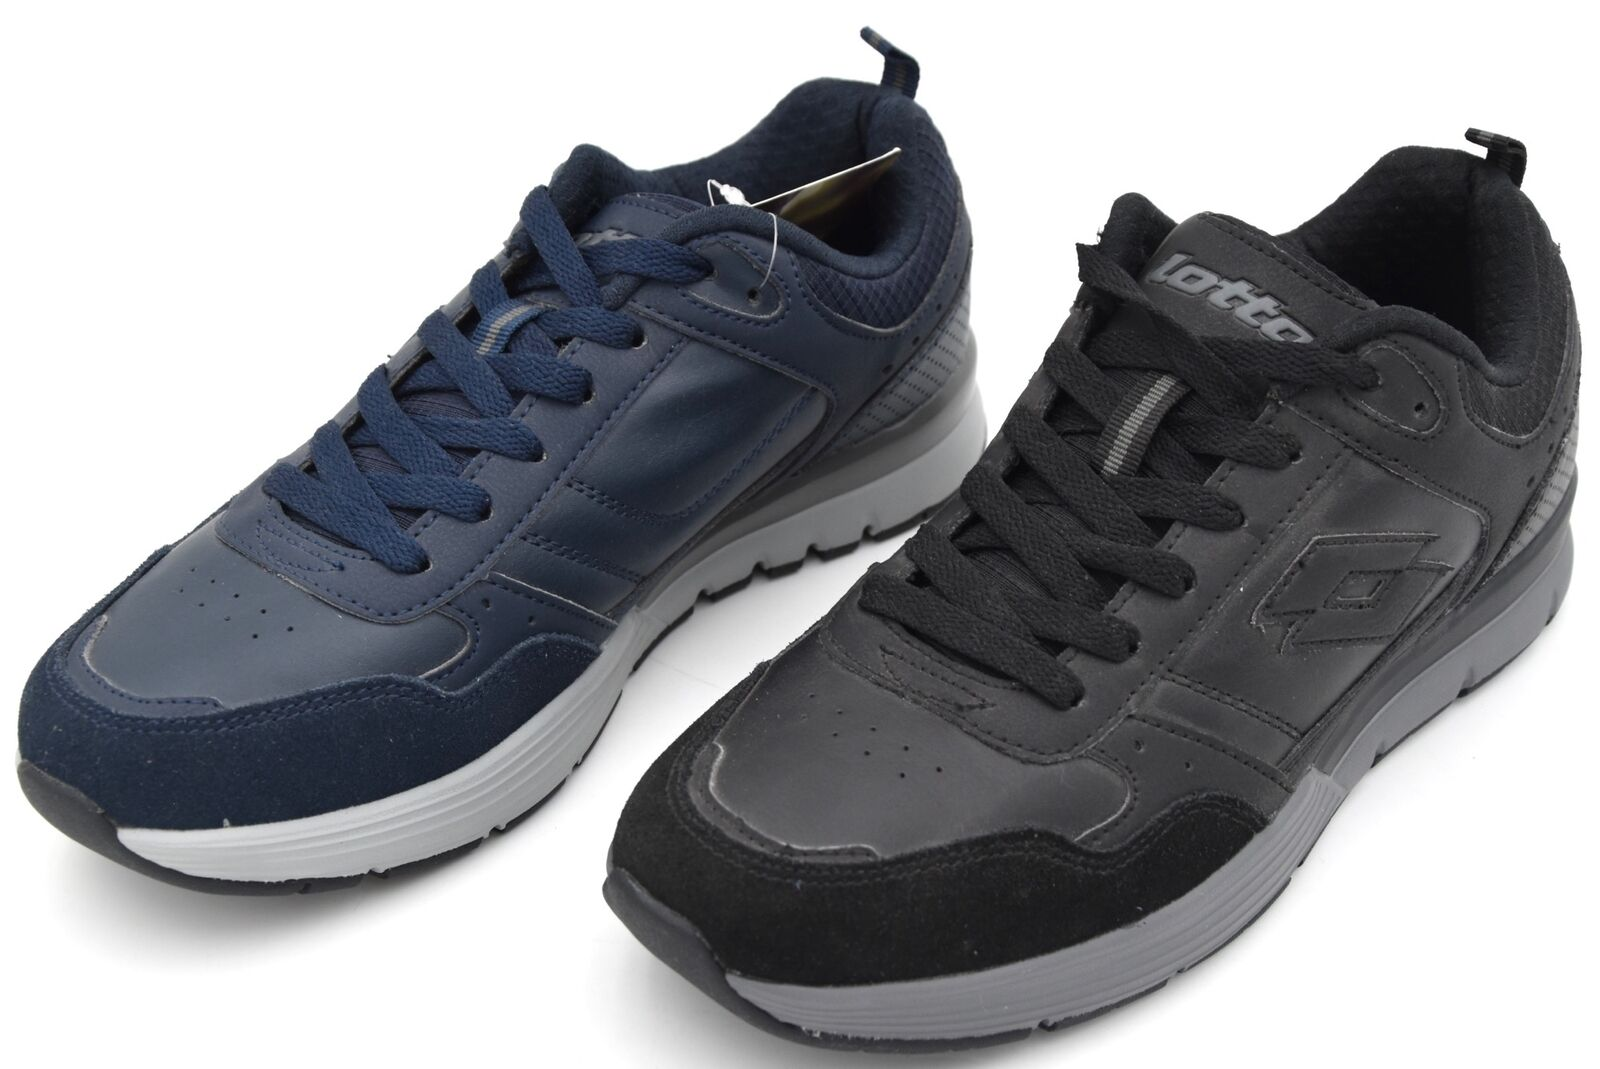 LOTTO LIFES MAN SNEAKER SHOES CASUAL FREE TIME CODE T2063 - T2064 GRANDE V NU